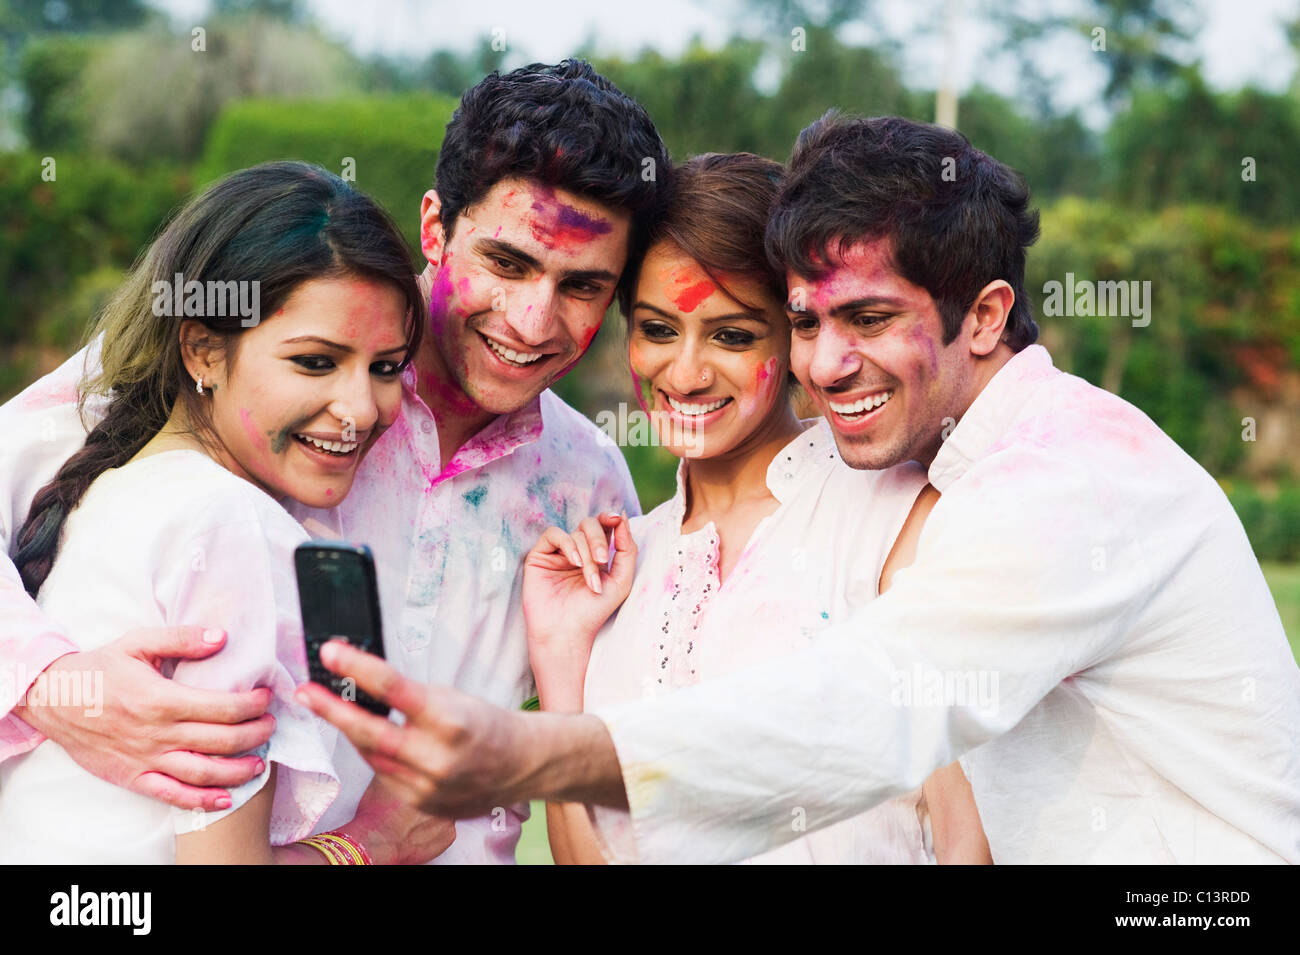 Friends taking a picture of themselves with a mobile phone on Holi Stock Photo